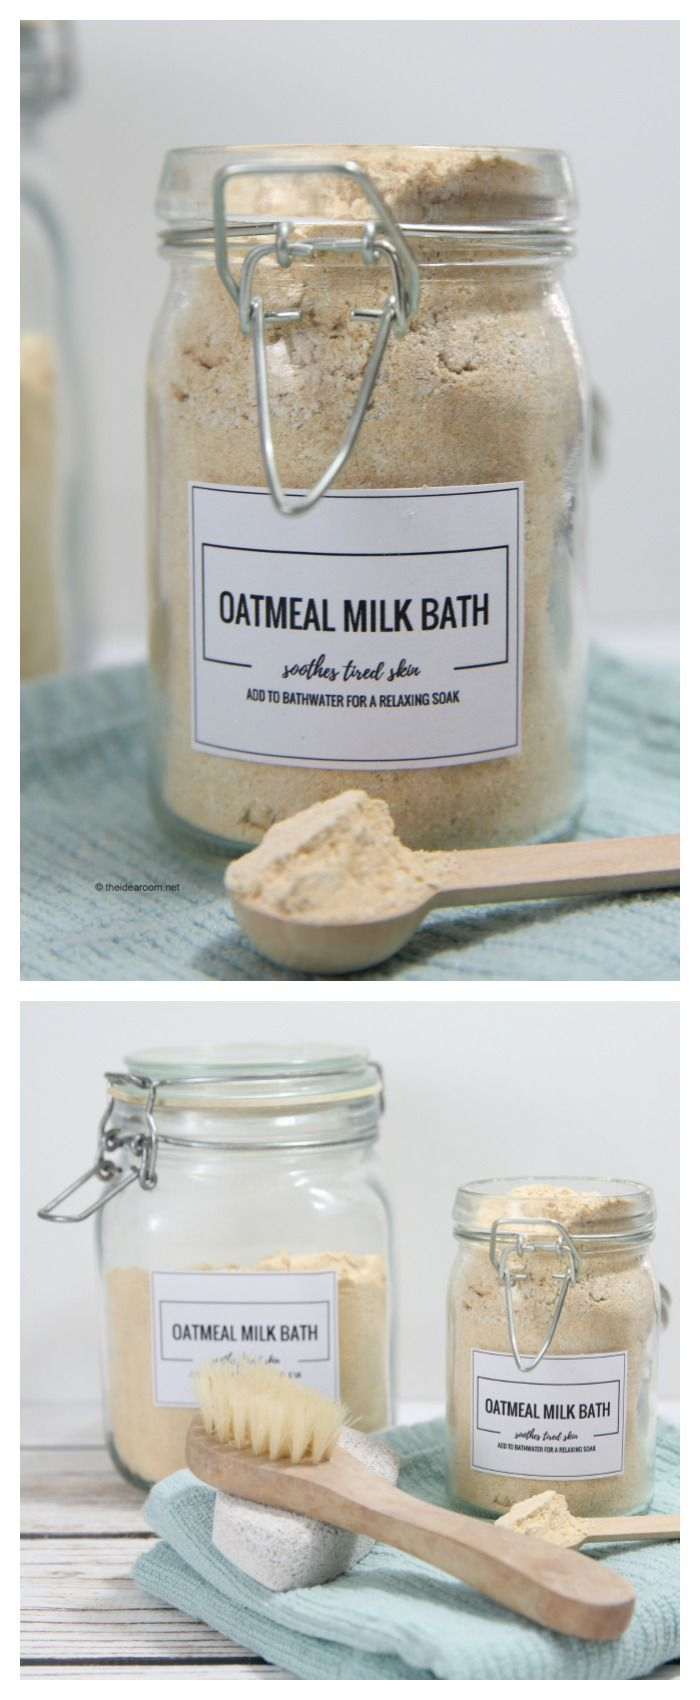 Make this simple recipe for a luxurious soak in the bath. Oatmeal Milk Bath has moisturizing effects and milk has a gentle exfolitating effect on your skin.